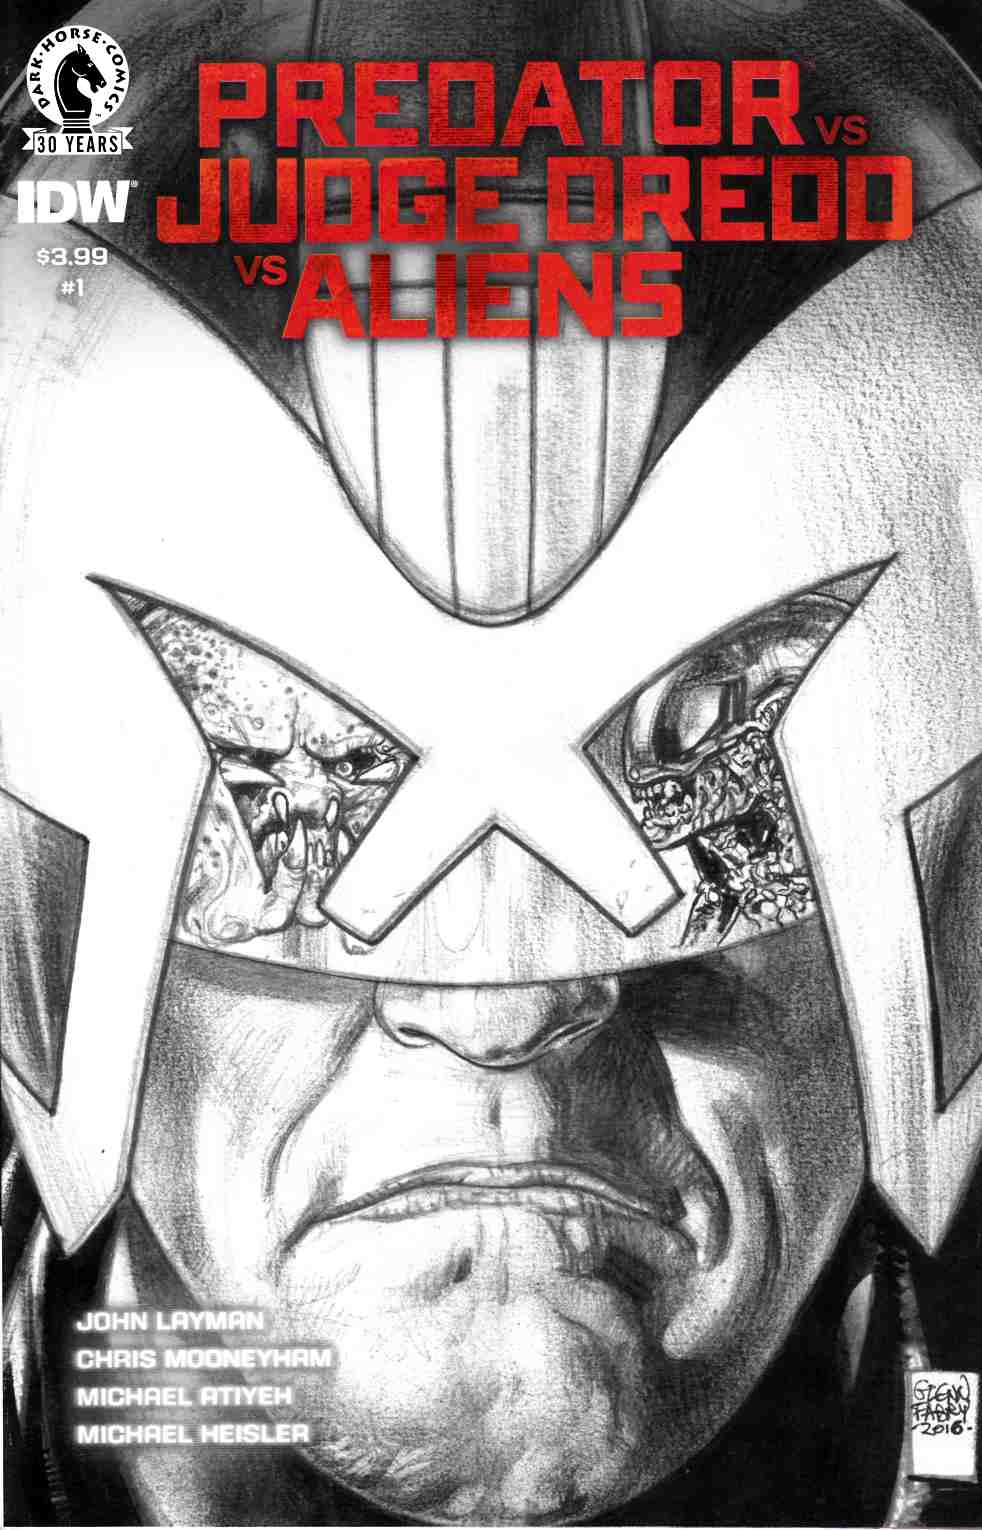 Predator vs Judge Dredd vs Aliens #1 Fabry Pencils Variant Cover [Dark Horse Comic]